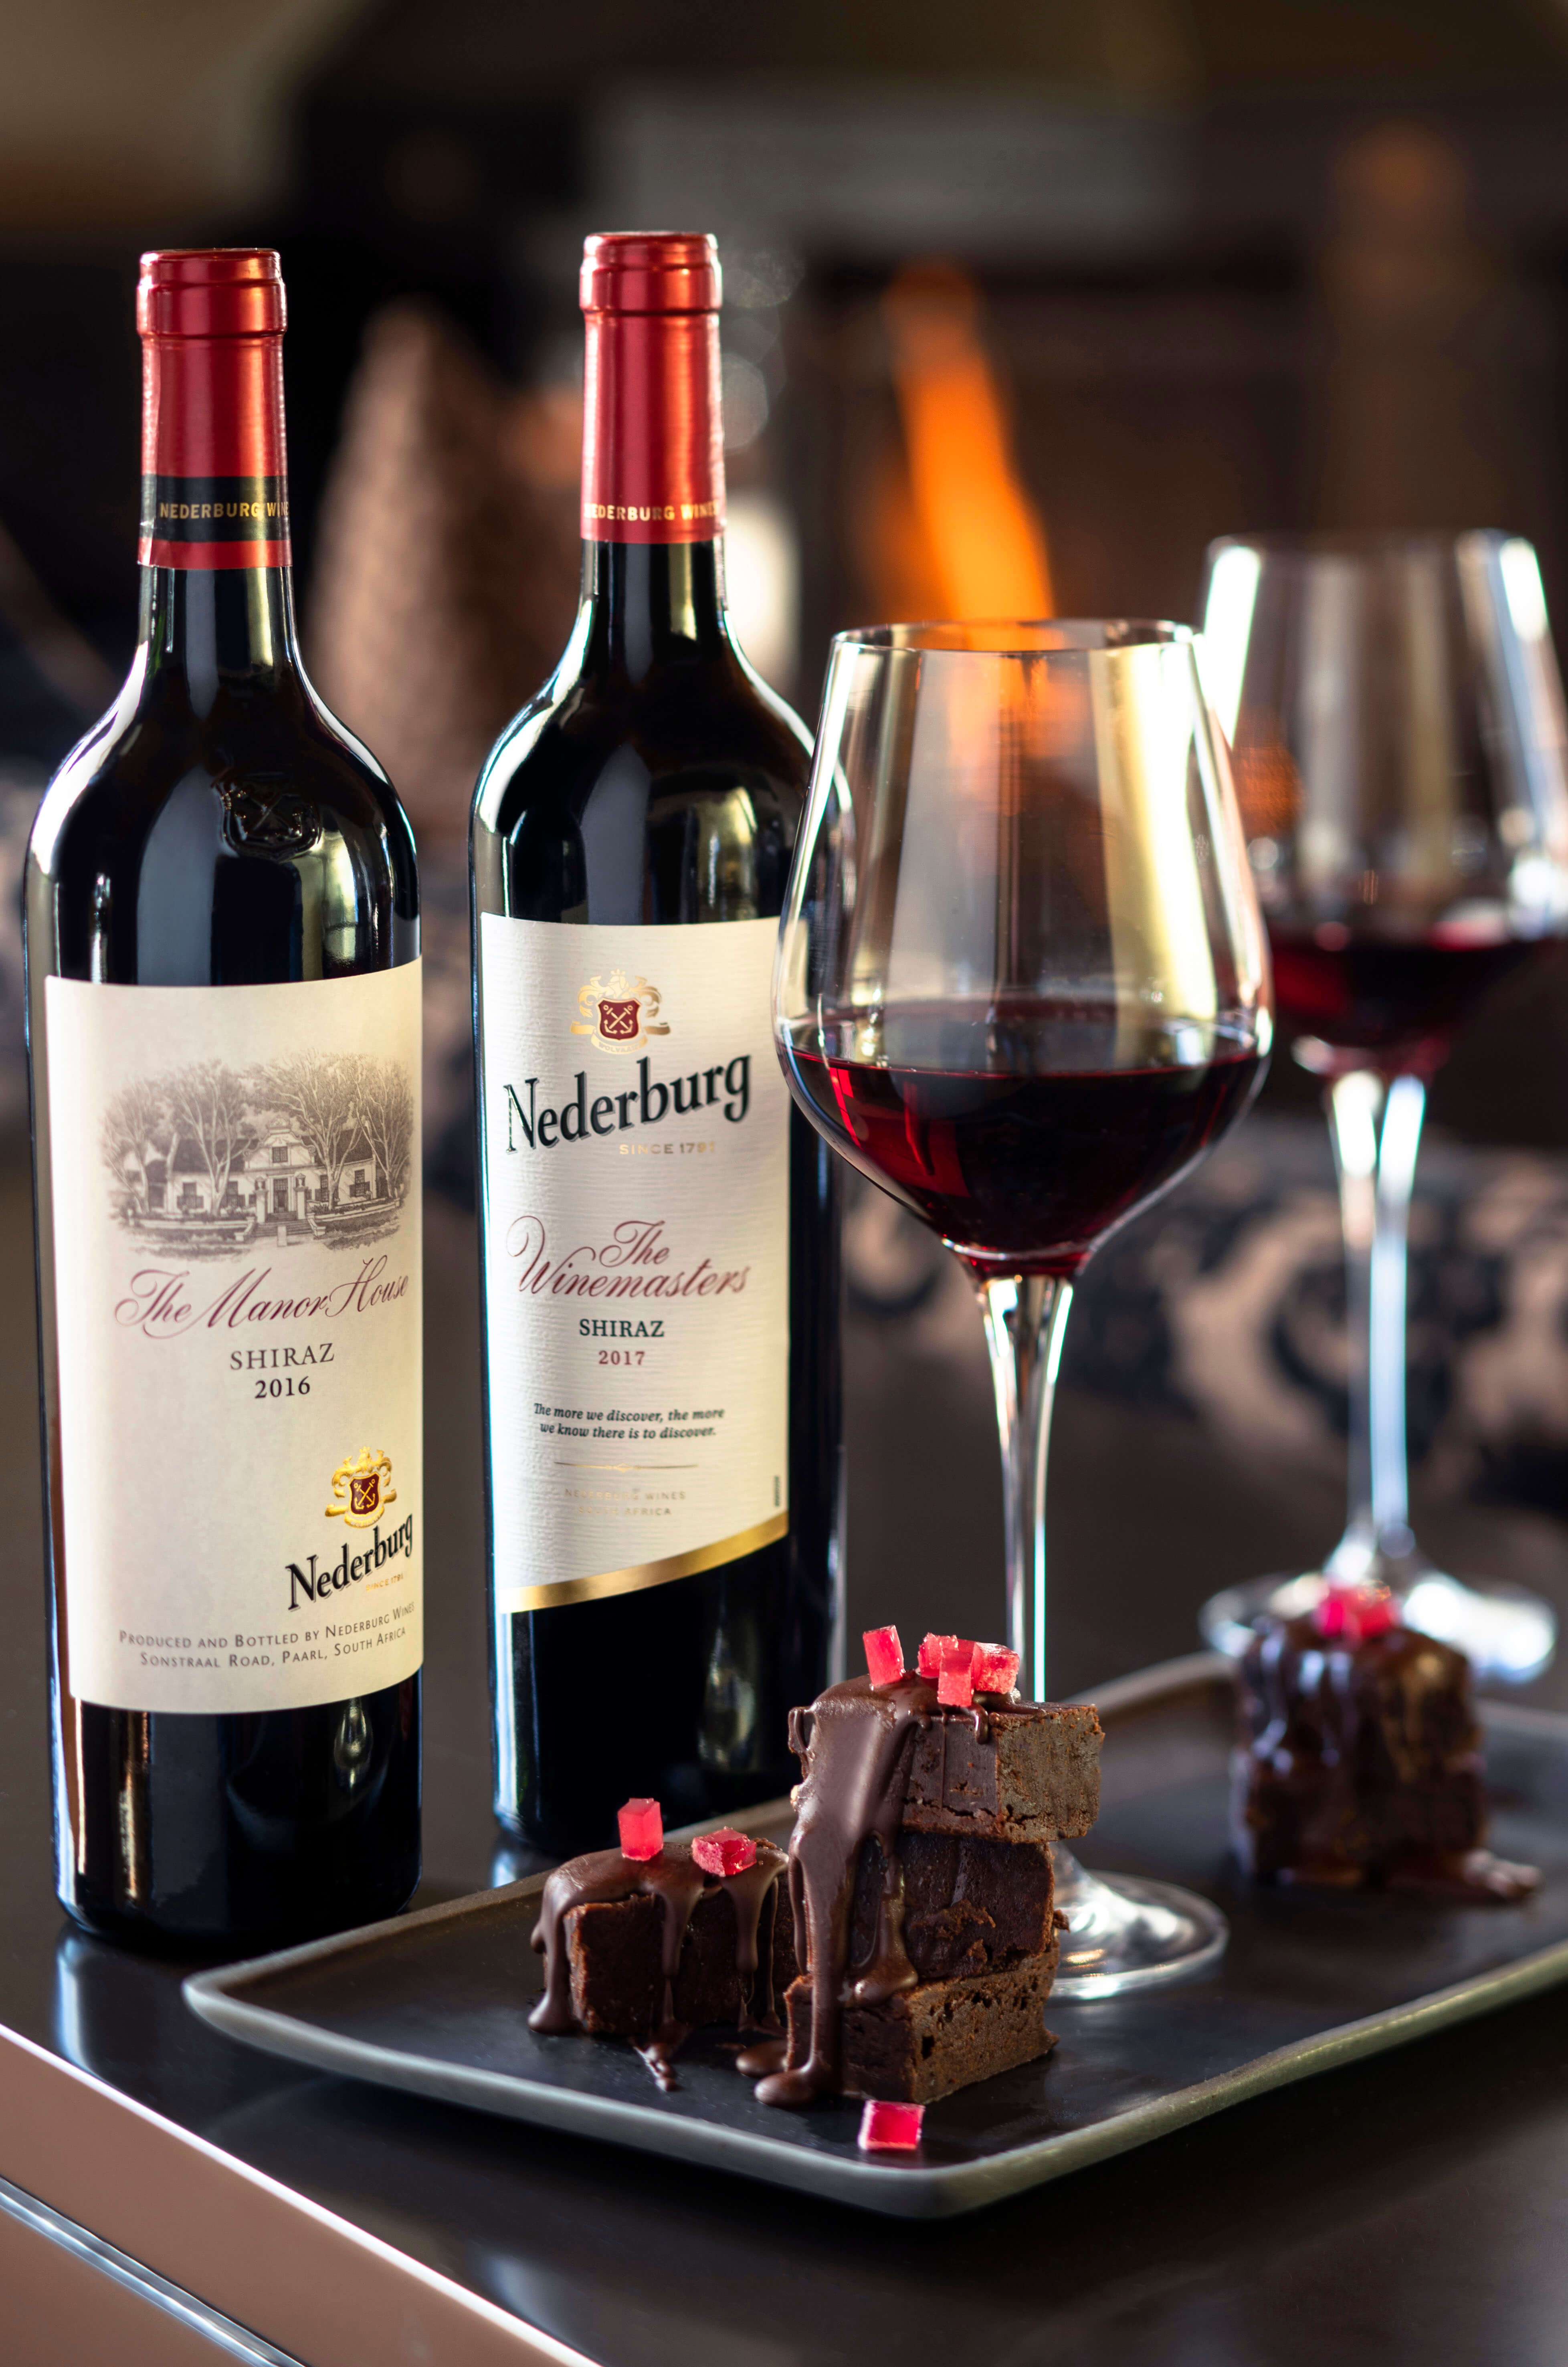 A BOUNTY OF SHIRAZ & VENISON AT NEDERBURG carousel image 4